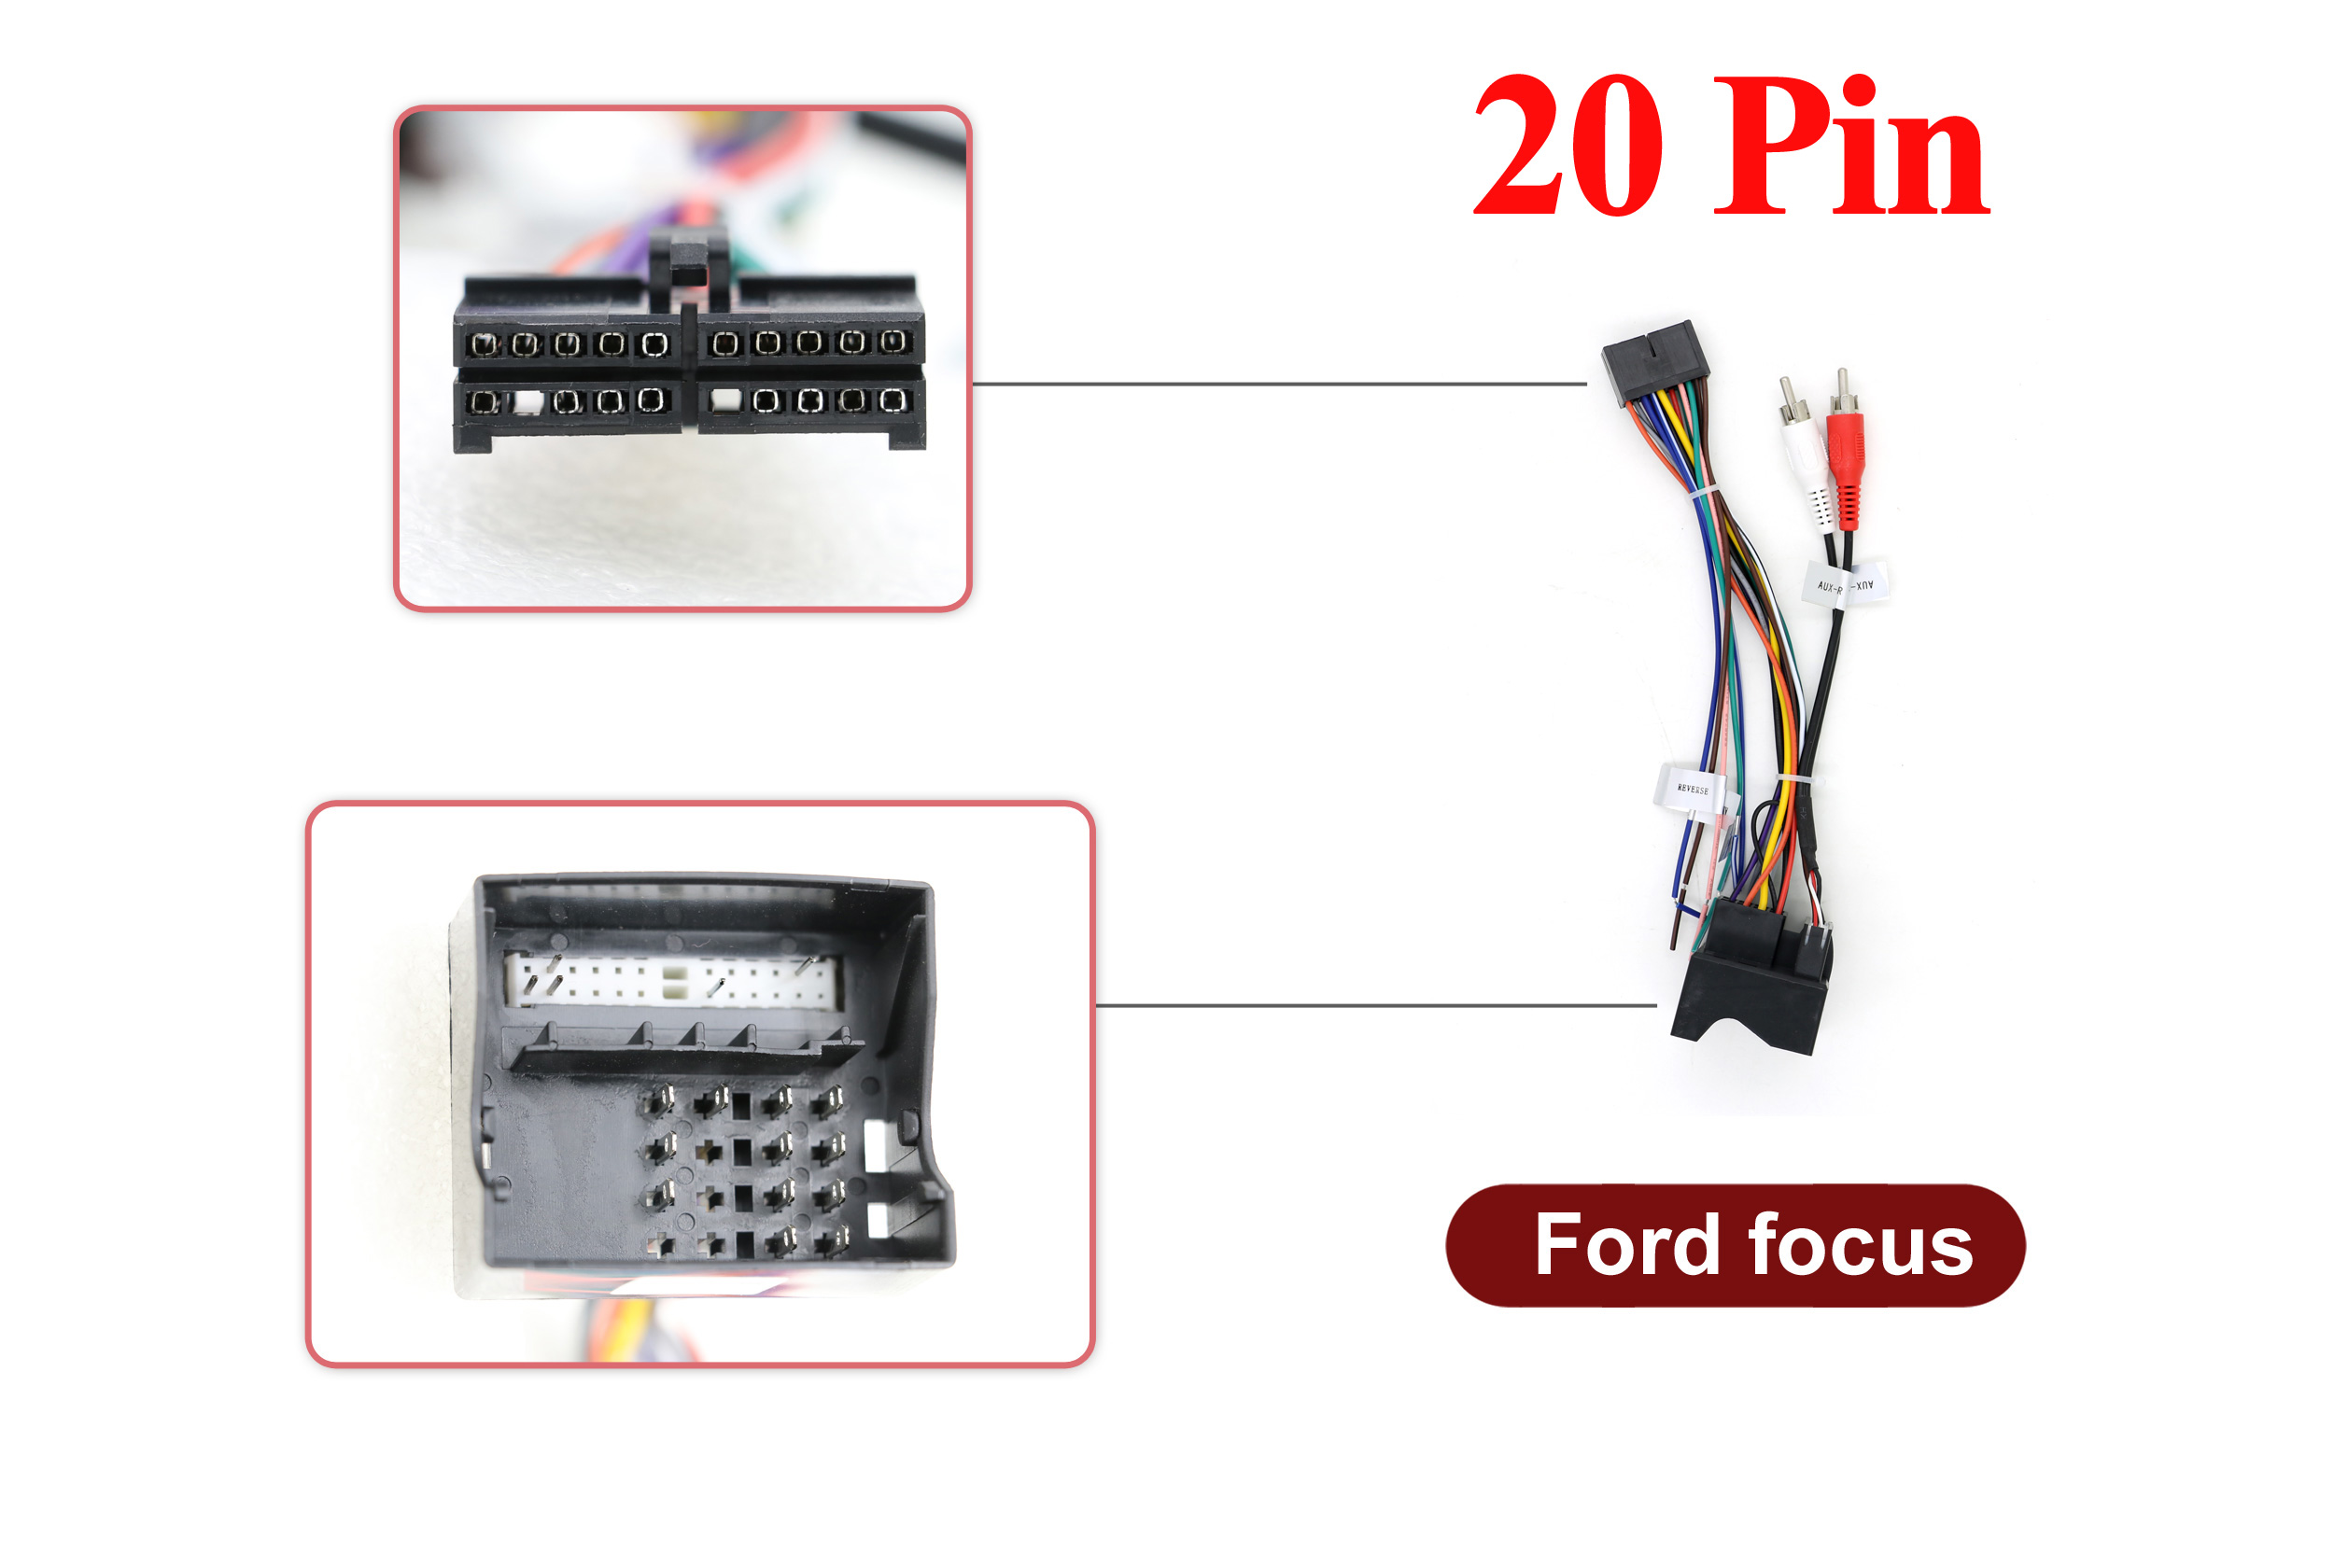 20 PIN For Ford Focus ISO Wiring Harness Car Radio Adaptor Connector Wire  Plug and play| | - AliExpressAliExpress